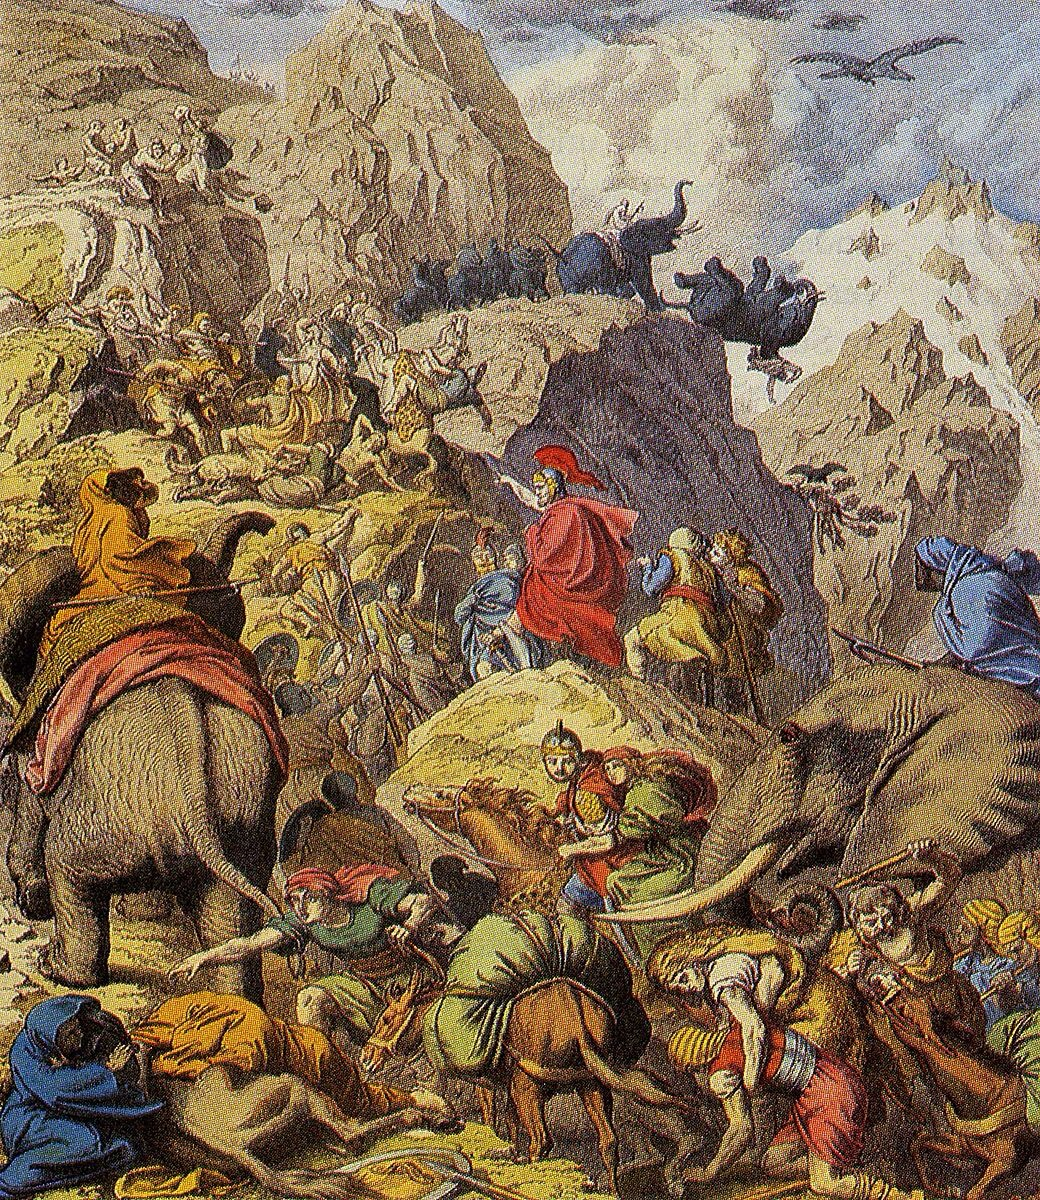 Hannibal, his man and his famous war elephants crossing the Alps.